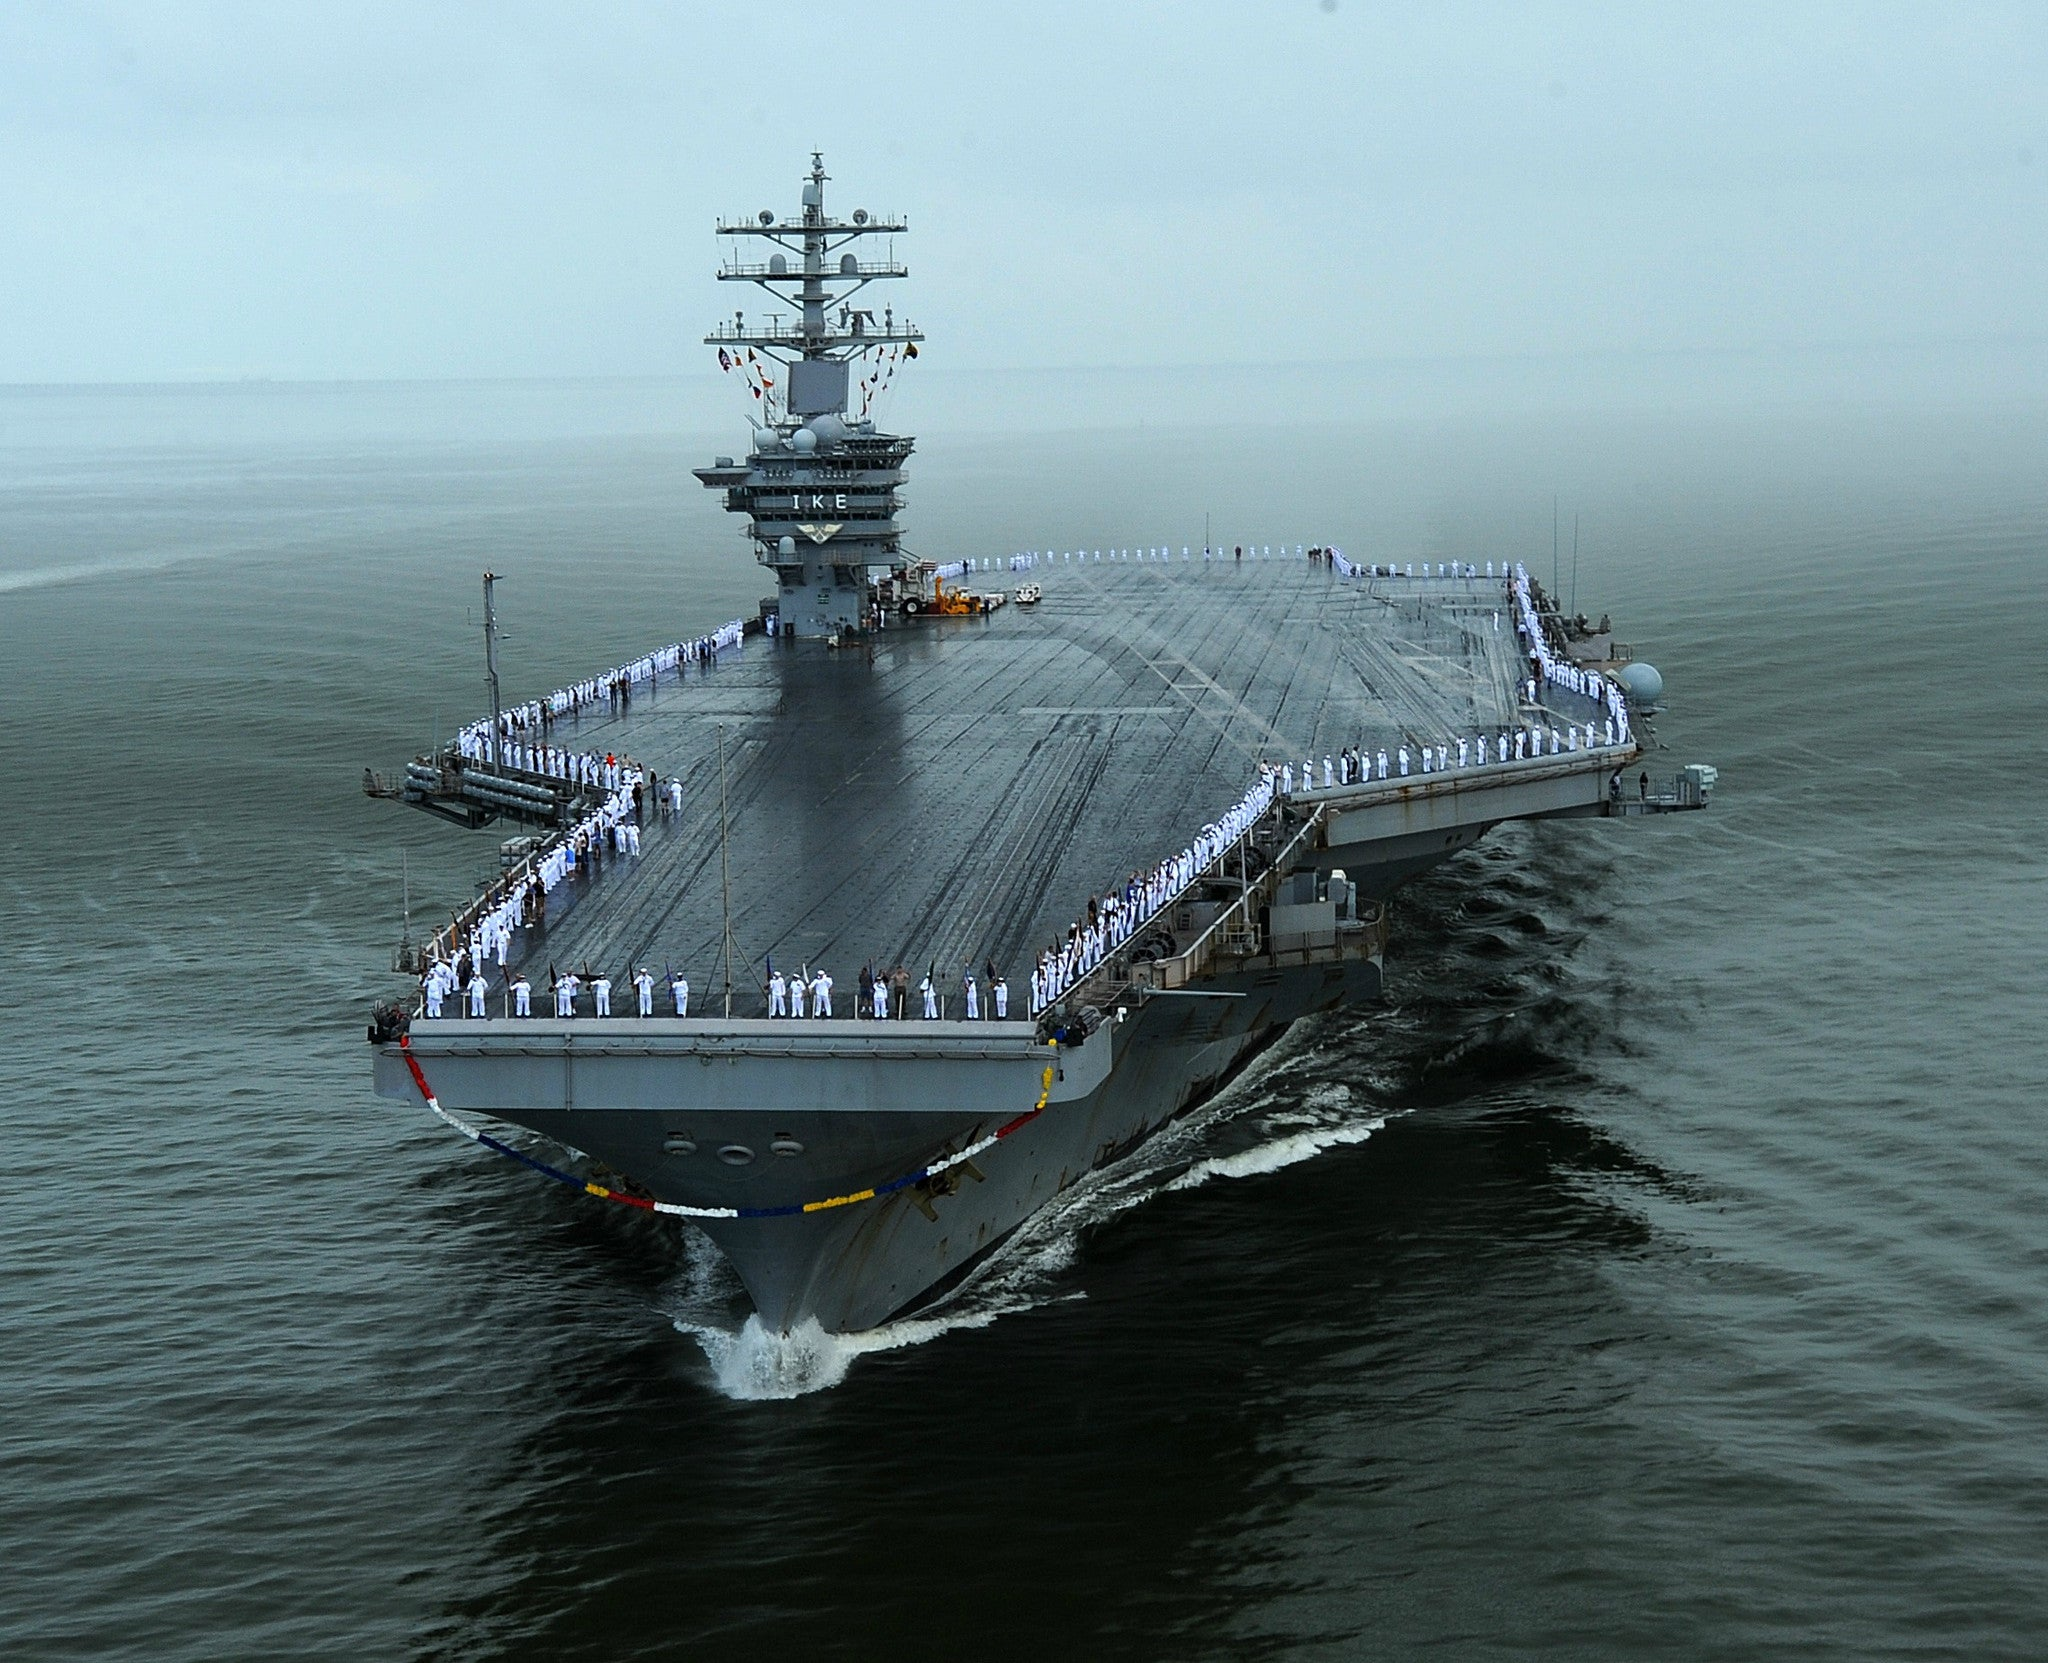 "Aircraft Carrier USS Dwight D. Eisenhower CVN-69 Norfolk, VA July 3, 2013 - 8 x 10"" Photograph"